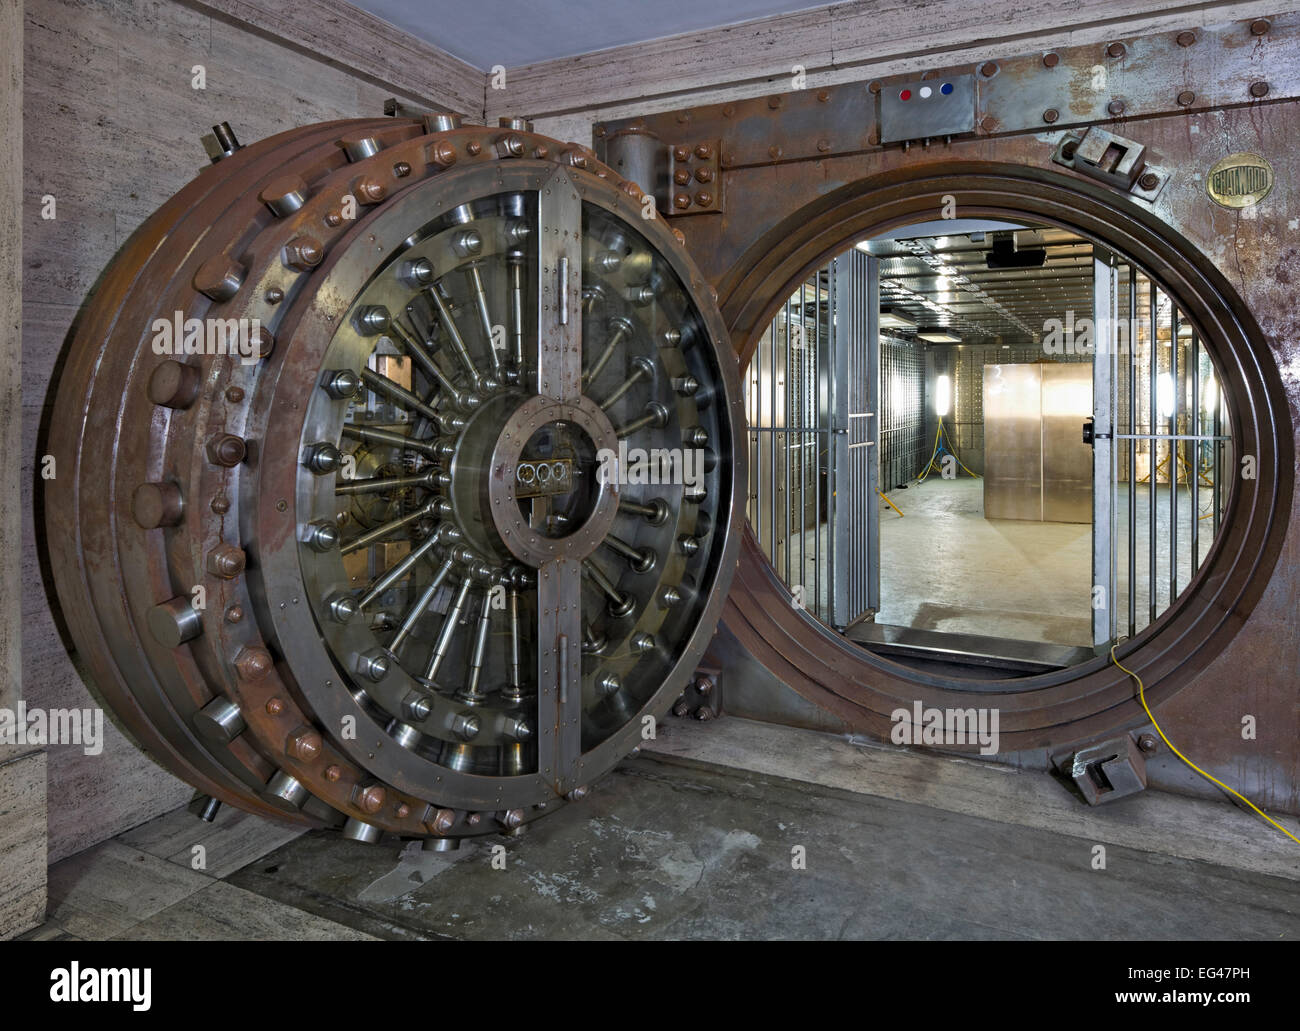 Huge bank vault door in a disused Bank - Stock Image